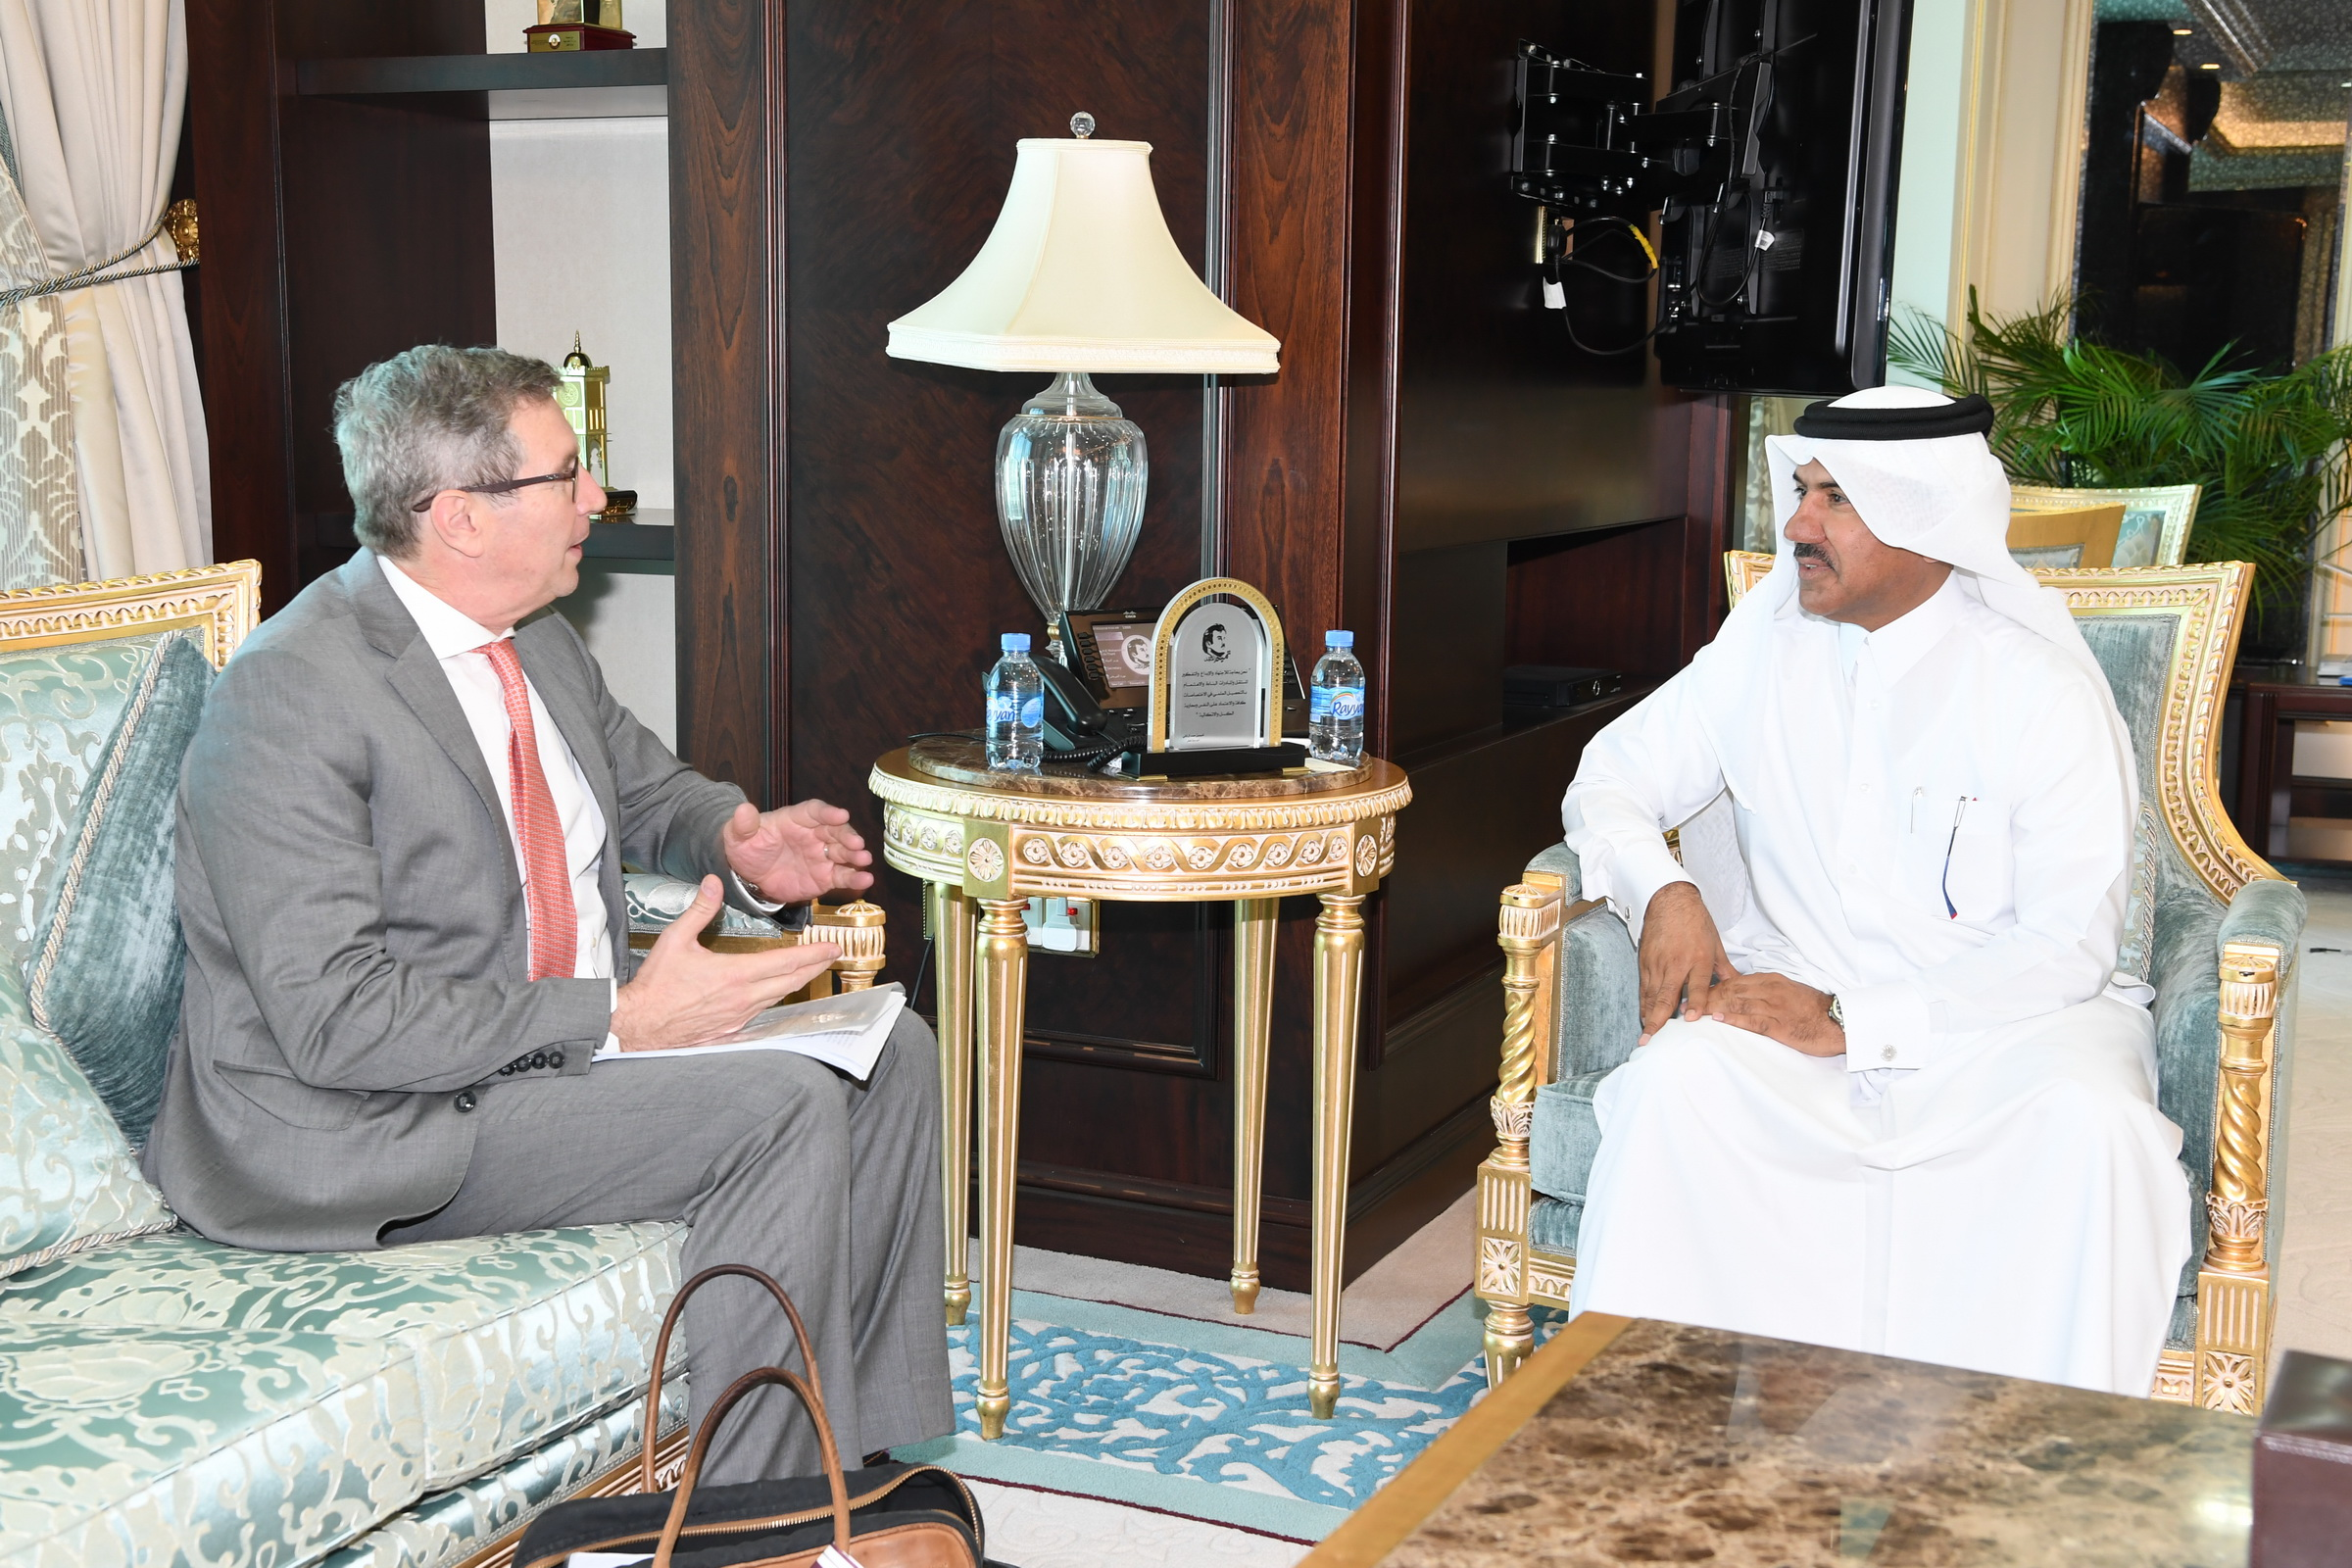 Foreign Ministry Secretary-General Meets UN Official